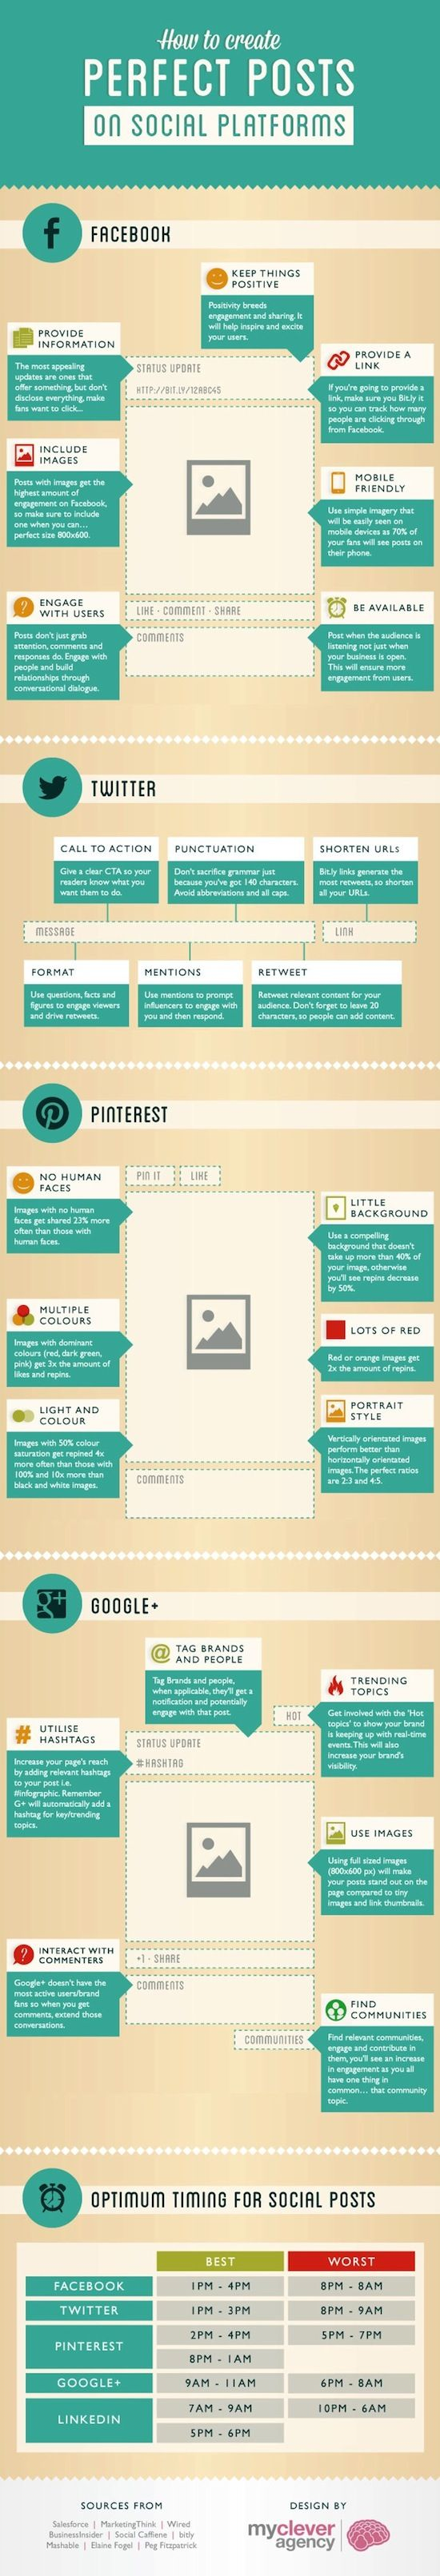 How to Create The Perfect Post On #Social Media: The 12 Days of Legal Marketing #Infographics